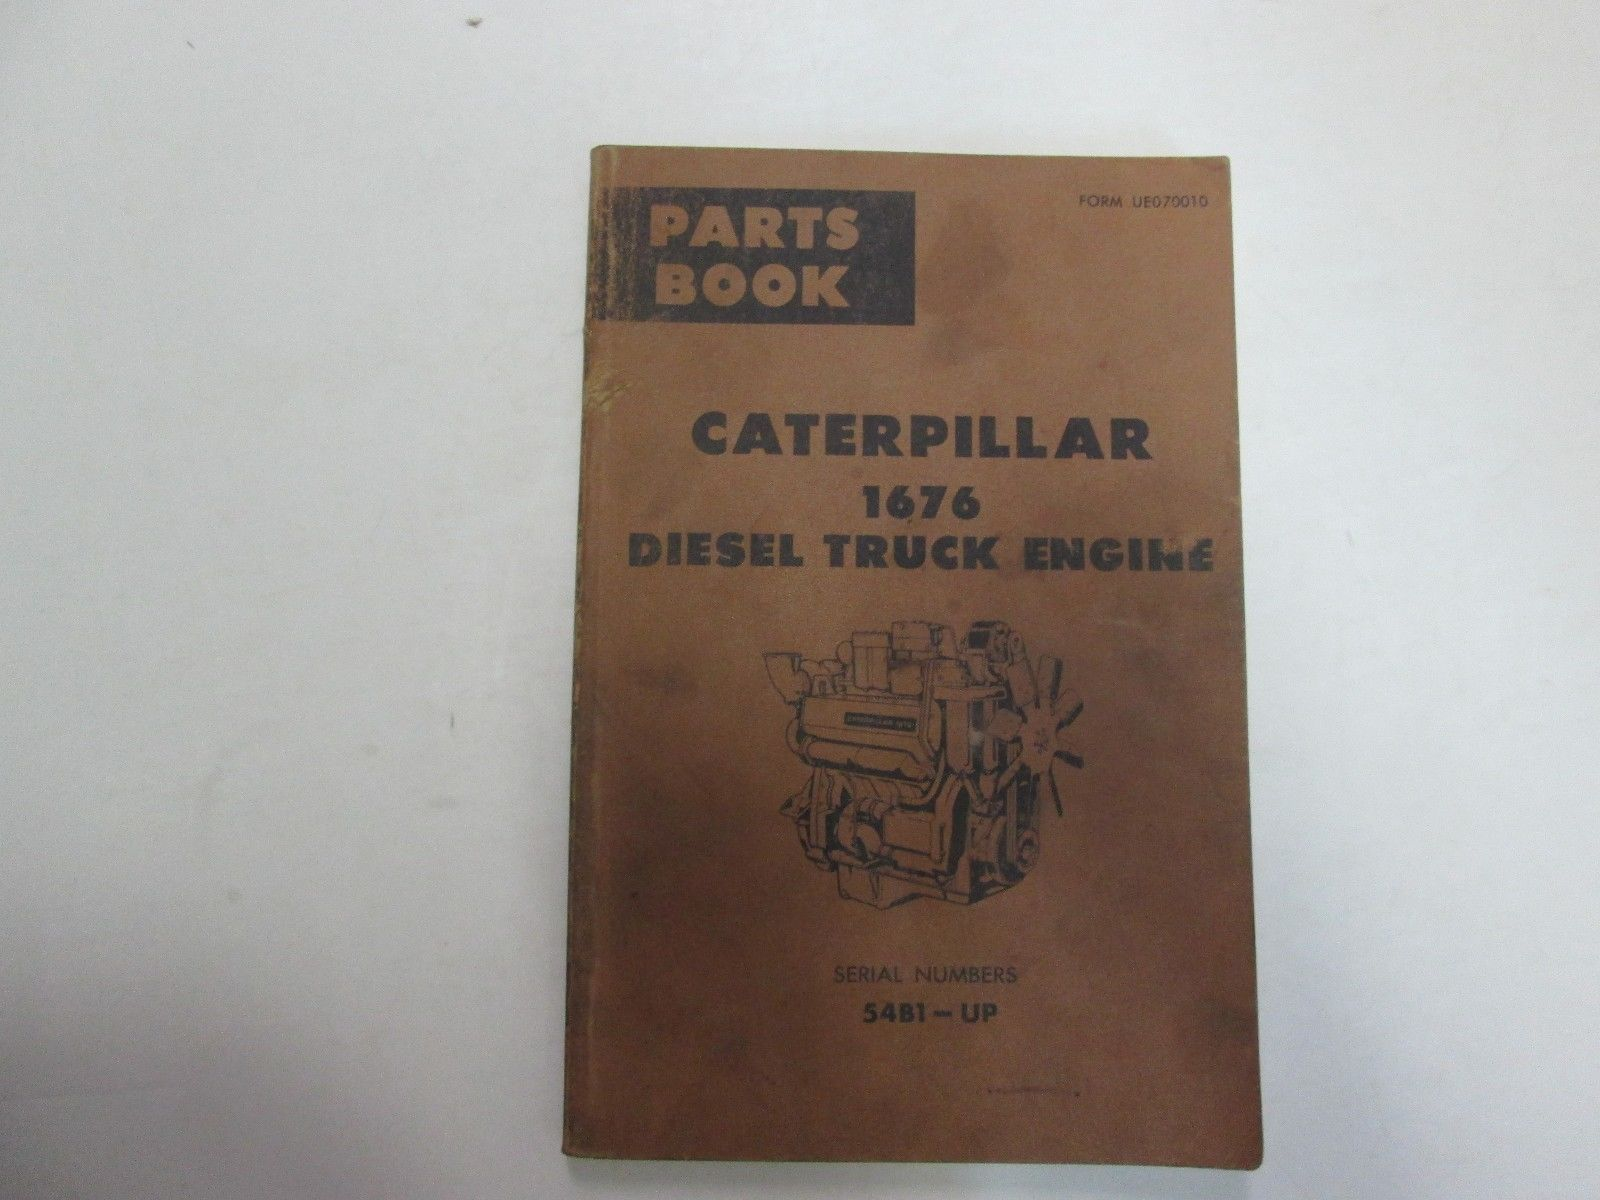 Caterpillar 1676 Diesel Truck Engine Parts and 50 similar items